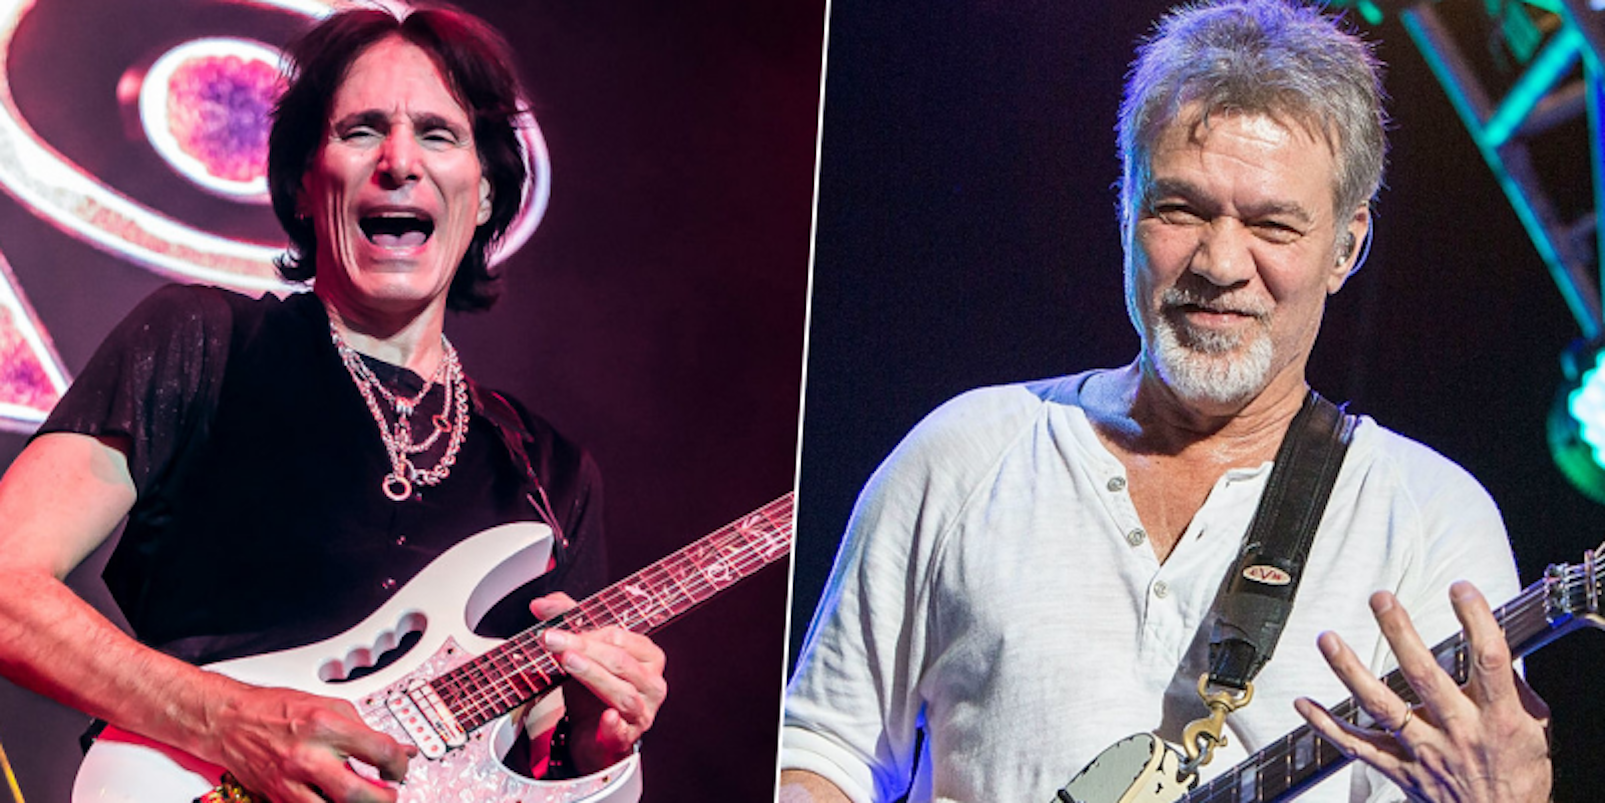 Steve Vai and Eddie Van Halen depicted in different photos each playing guitars